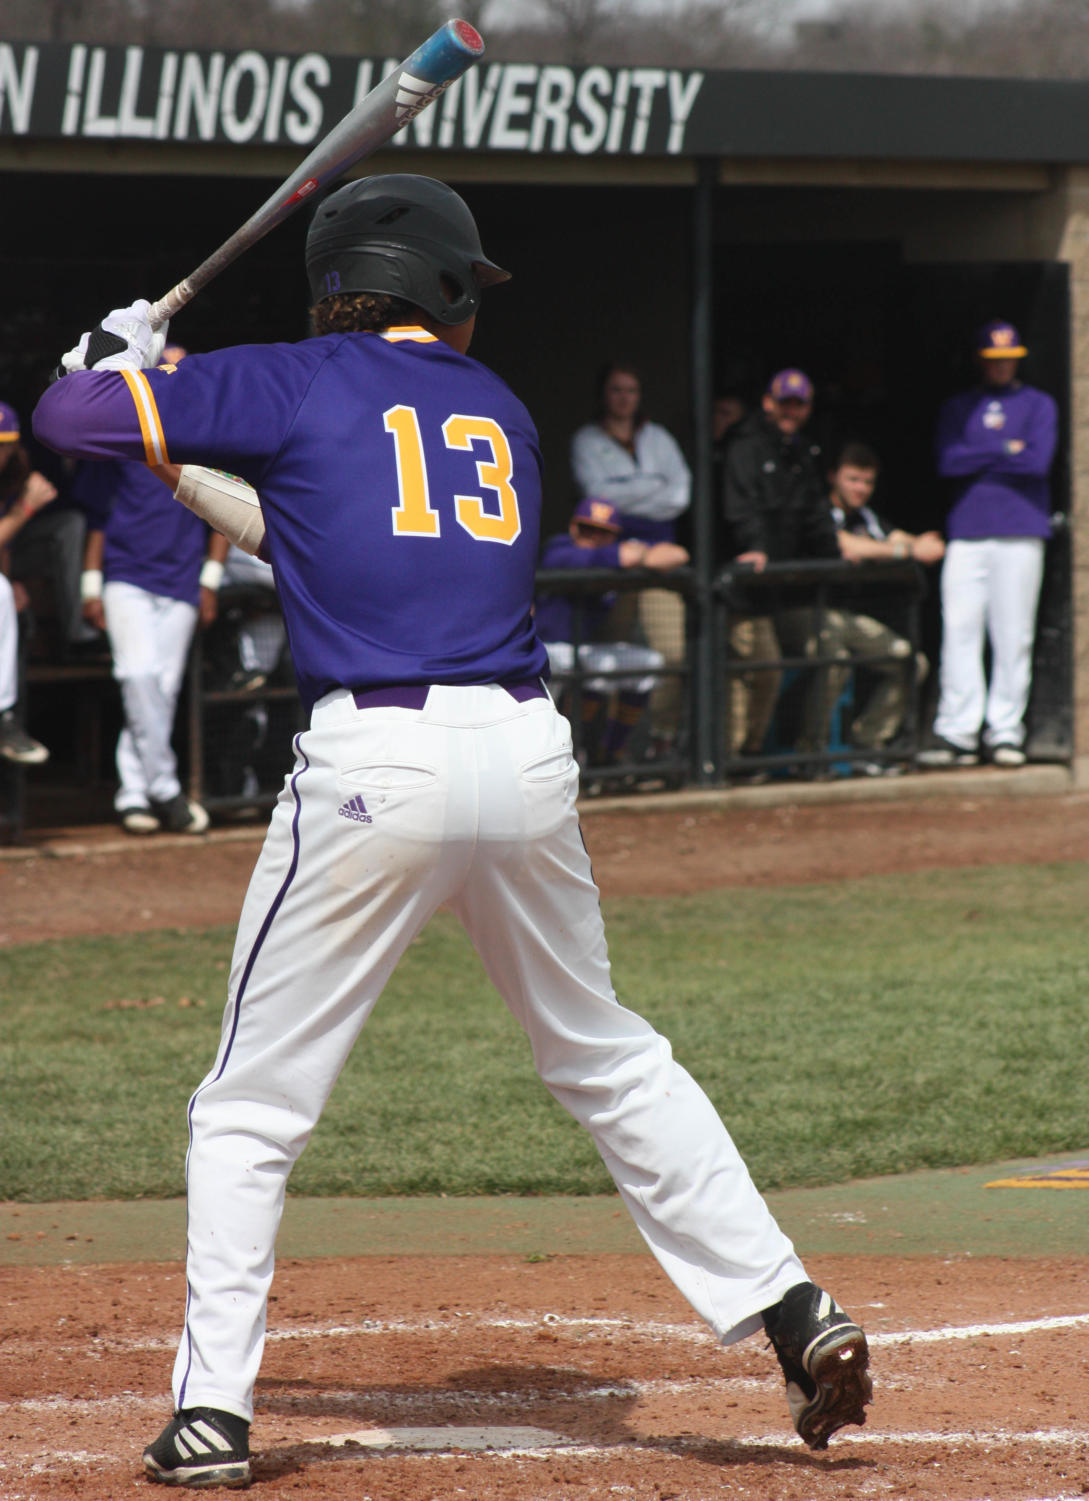 Drue Galassi at bat for the Leathernecks.